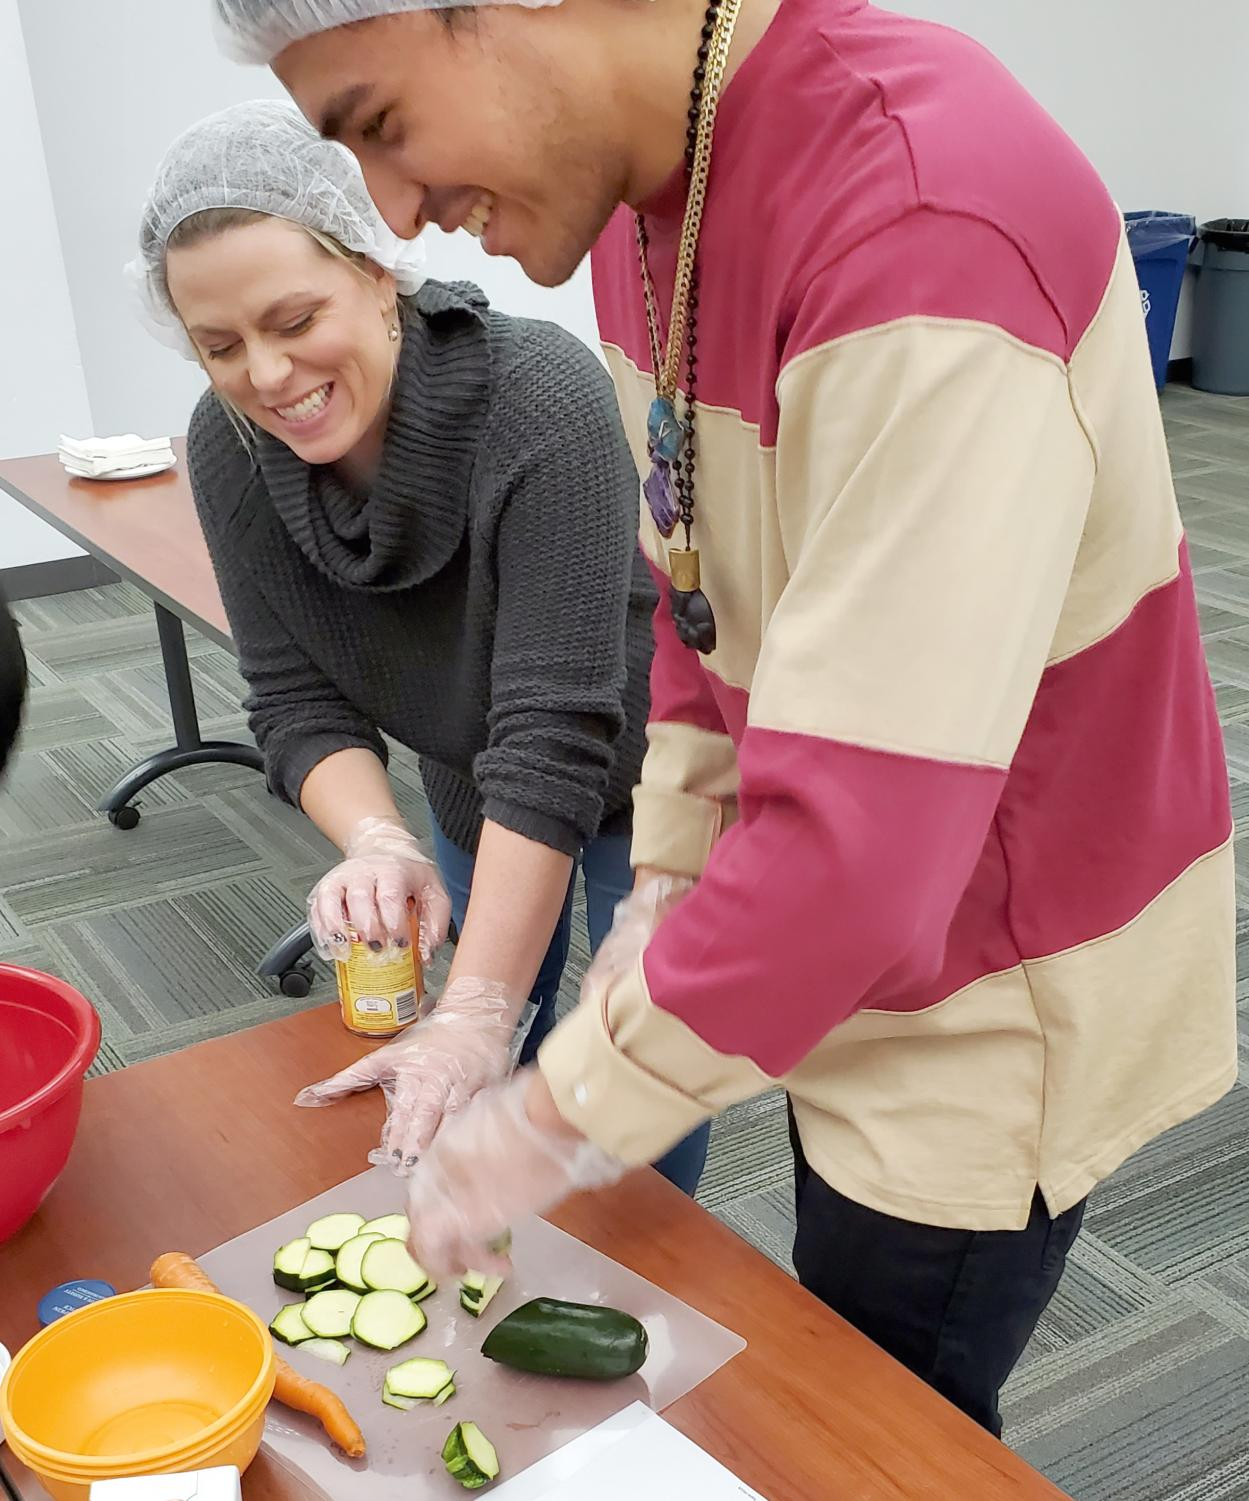 Renee Savage and Manny Jimenez prepping vegetables for corn and green chili salad.